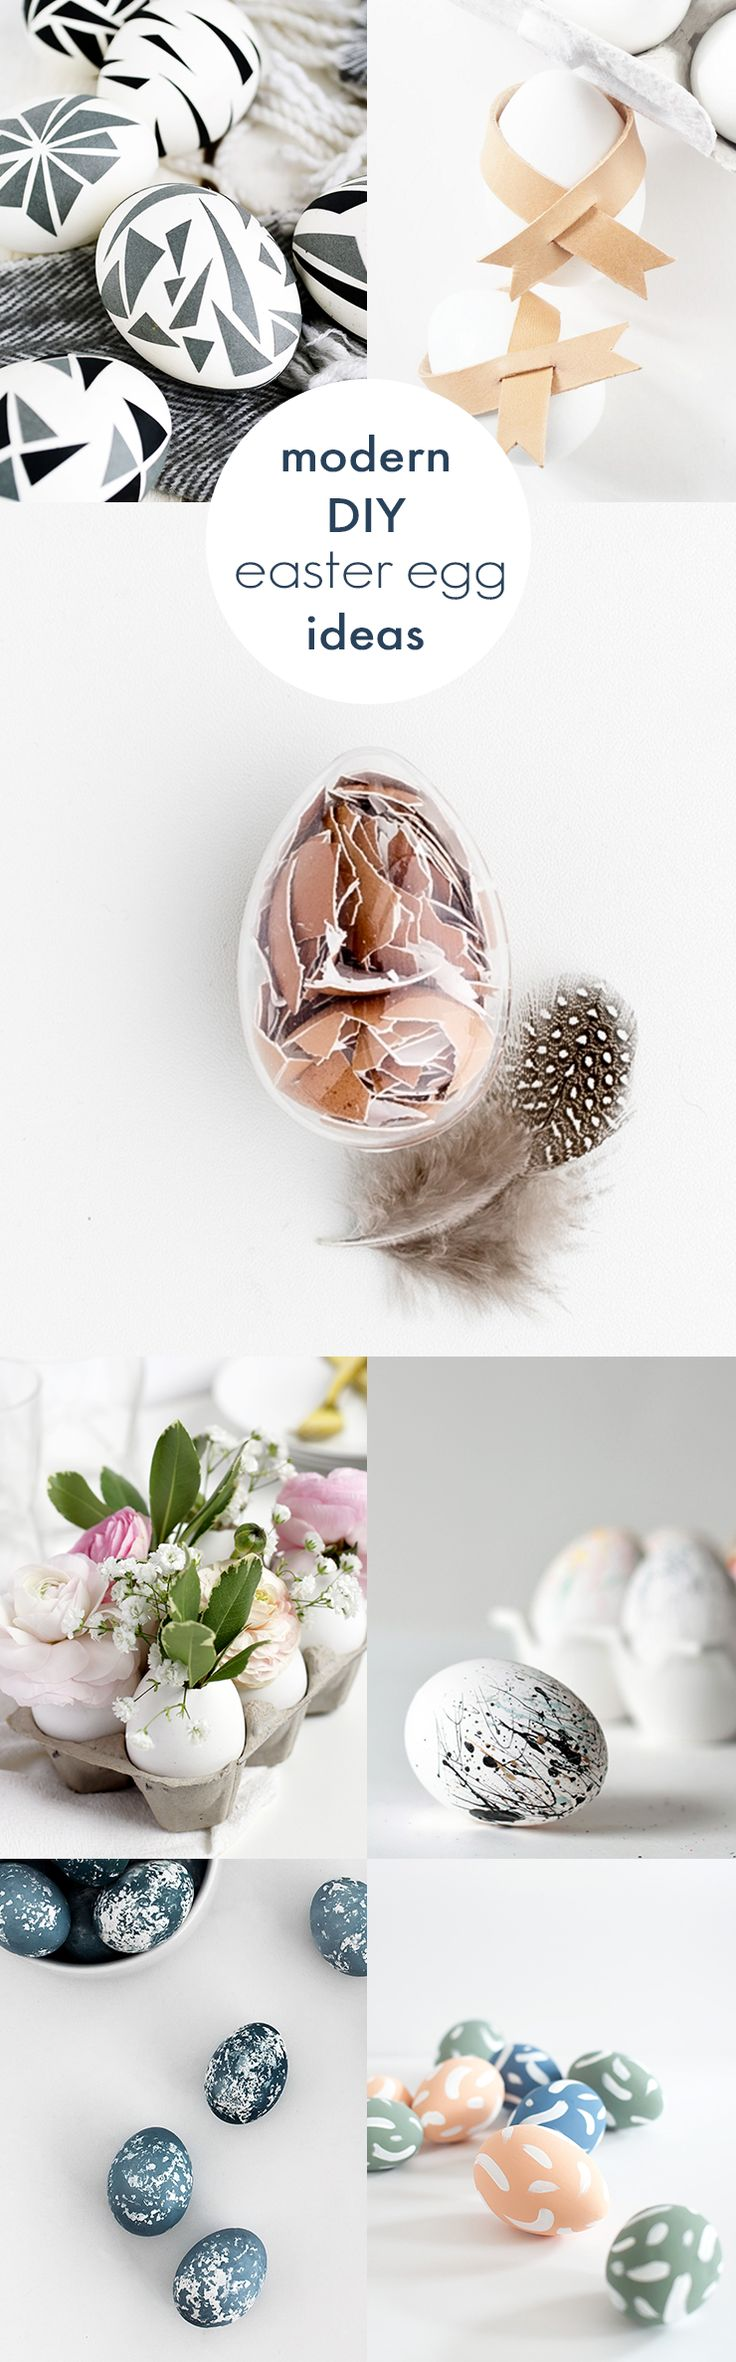 You'll love this roundup of beautiful and simple modern DIY Easter egg ideas, all of which are easy to recreate at home!